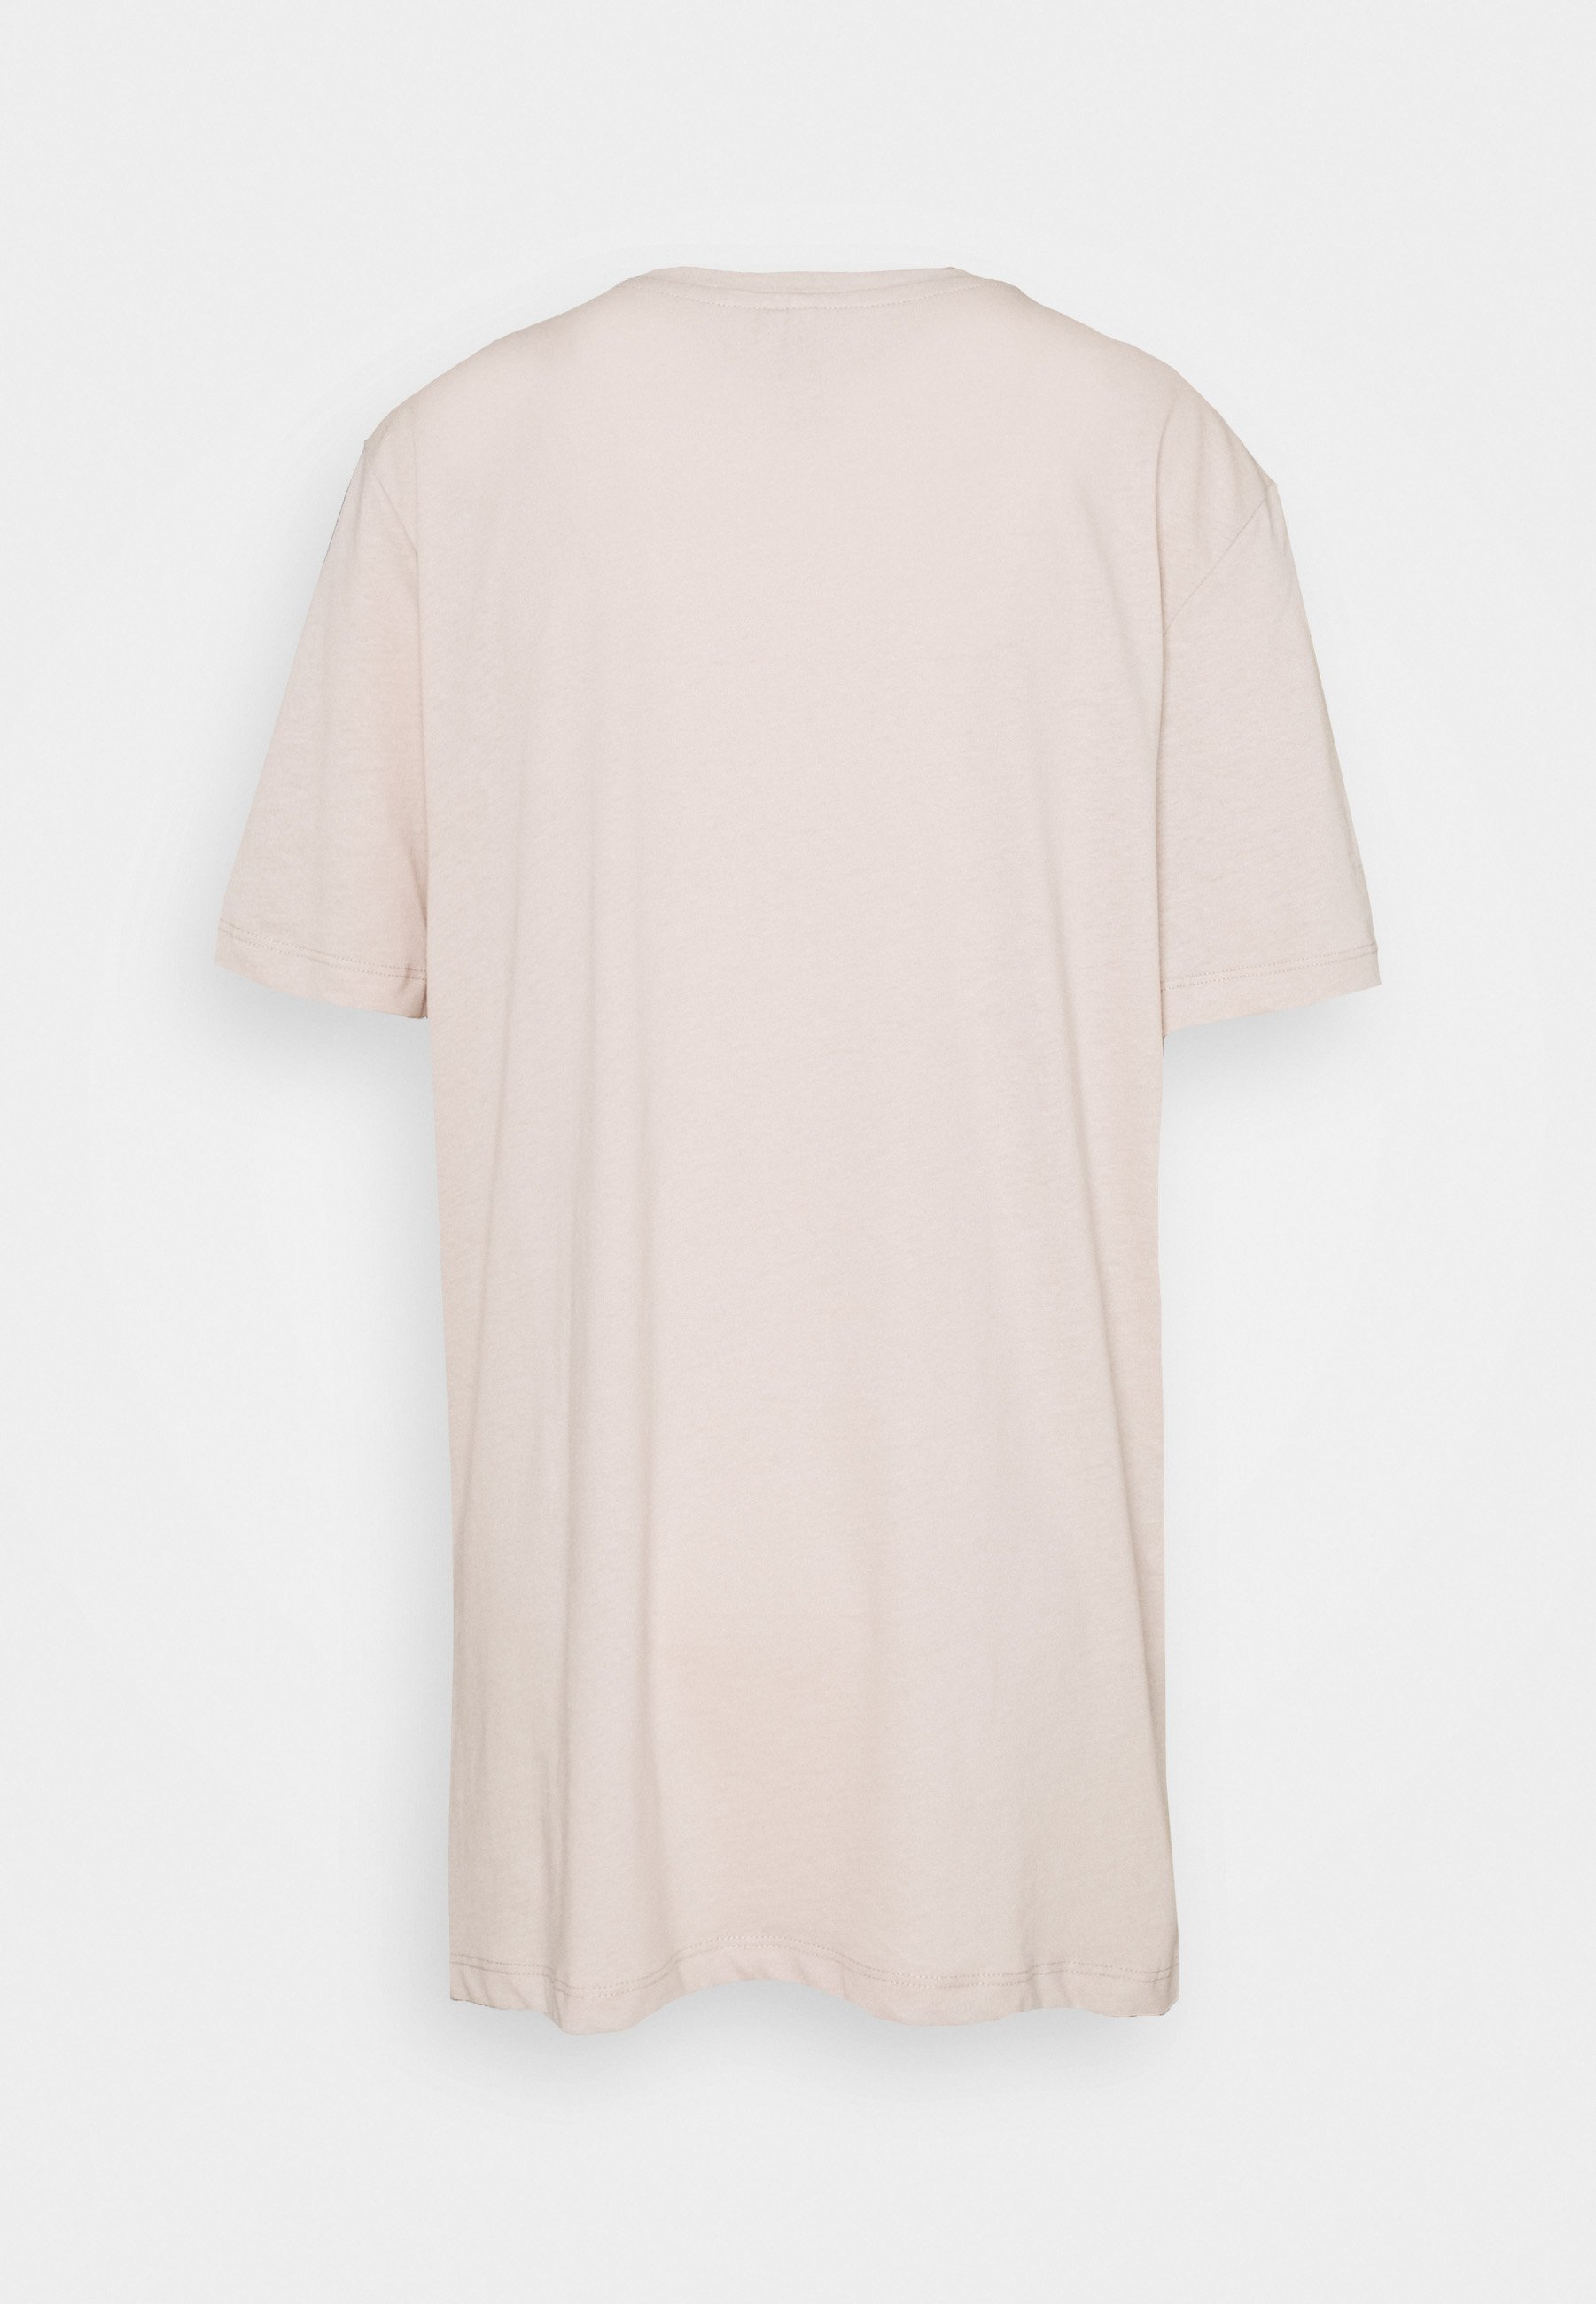 Nly By Nelly Oversize Tee - T-shirts Light Beige/offwhite